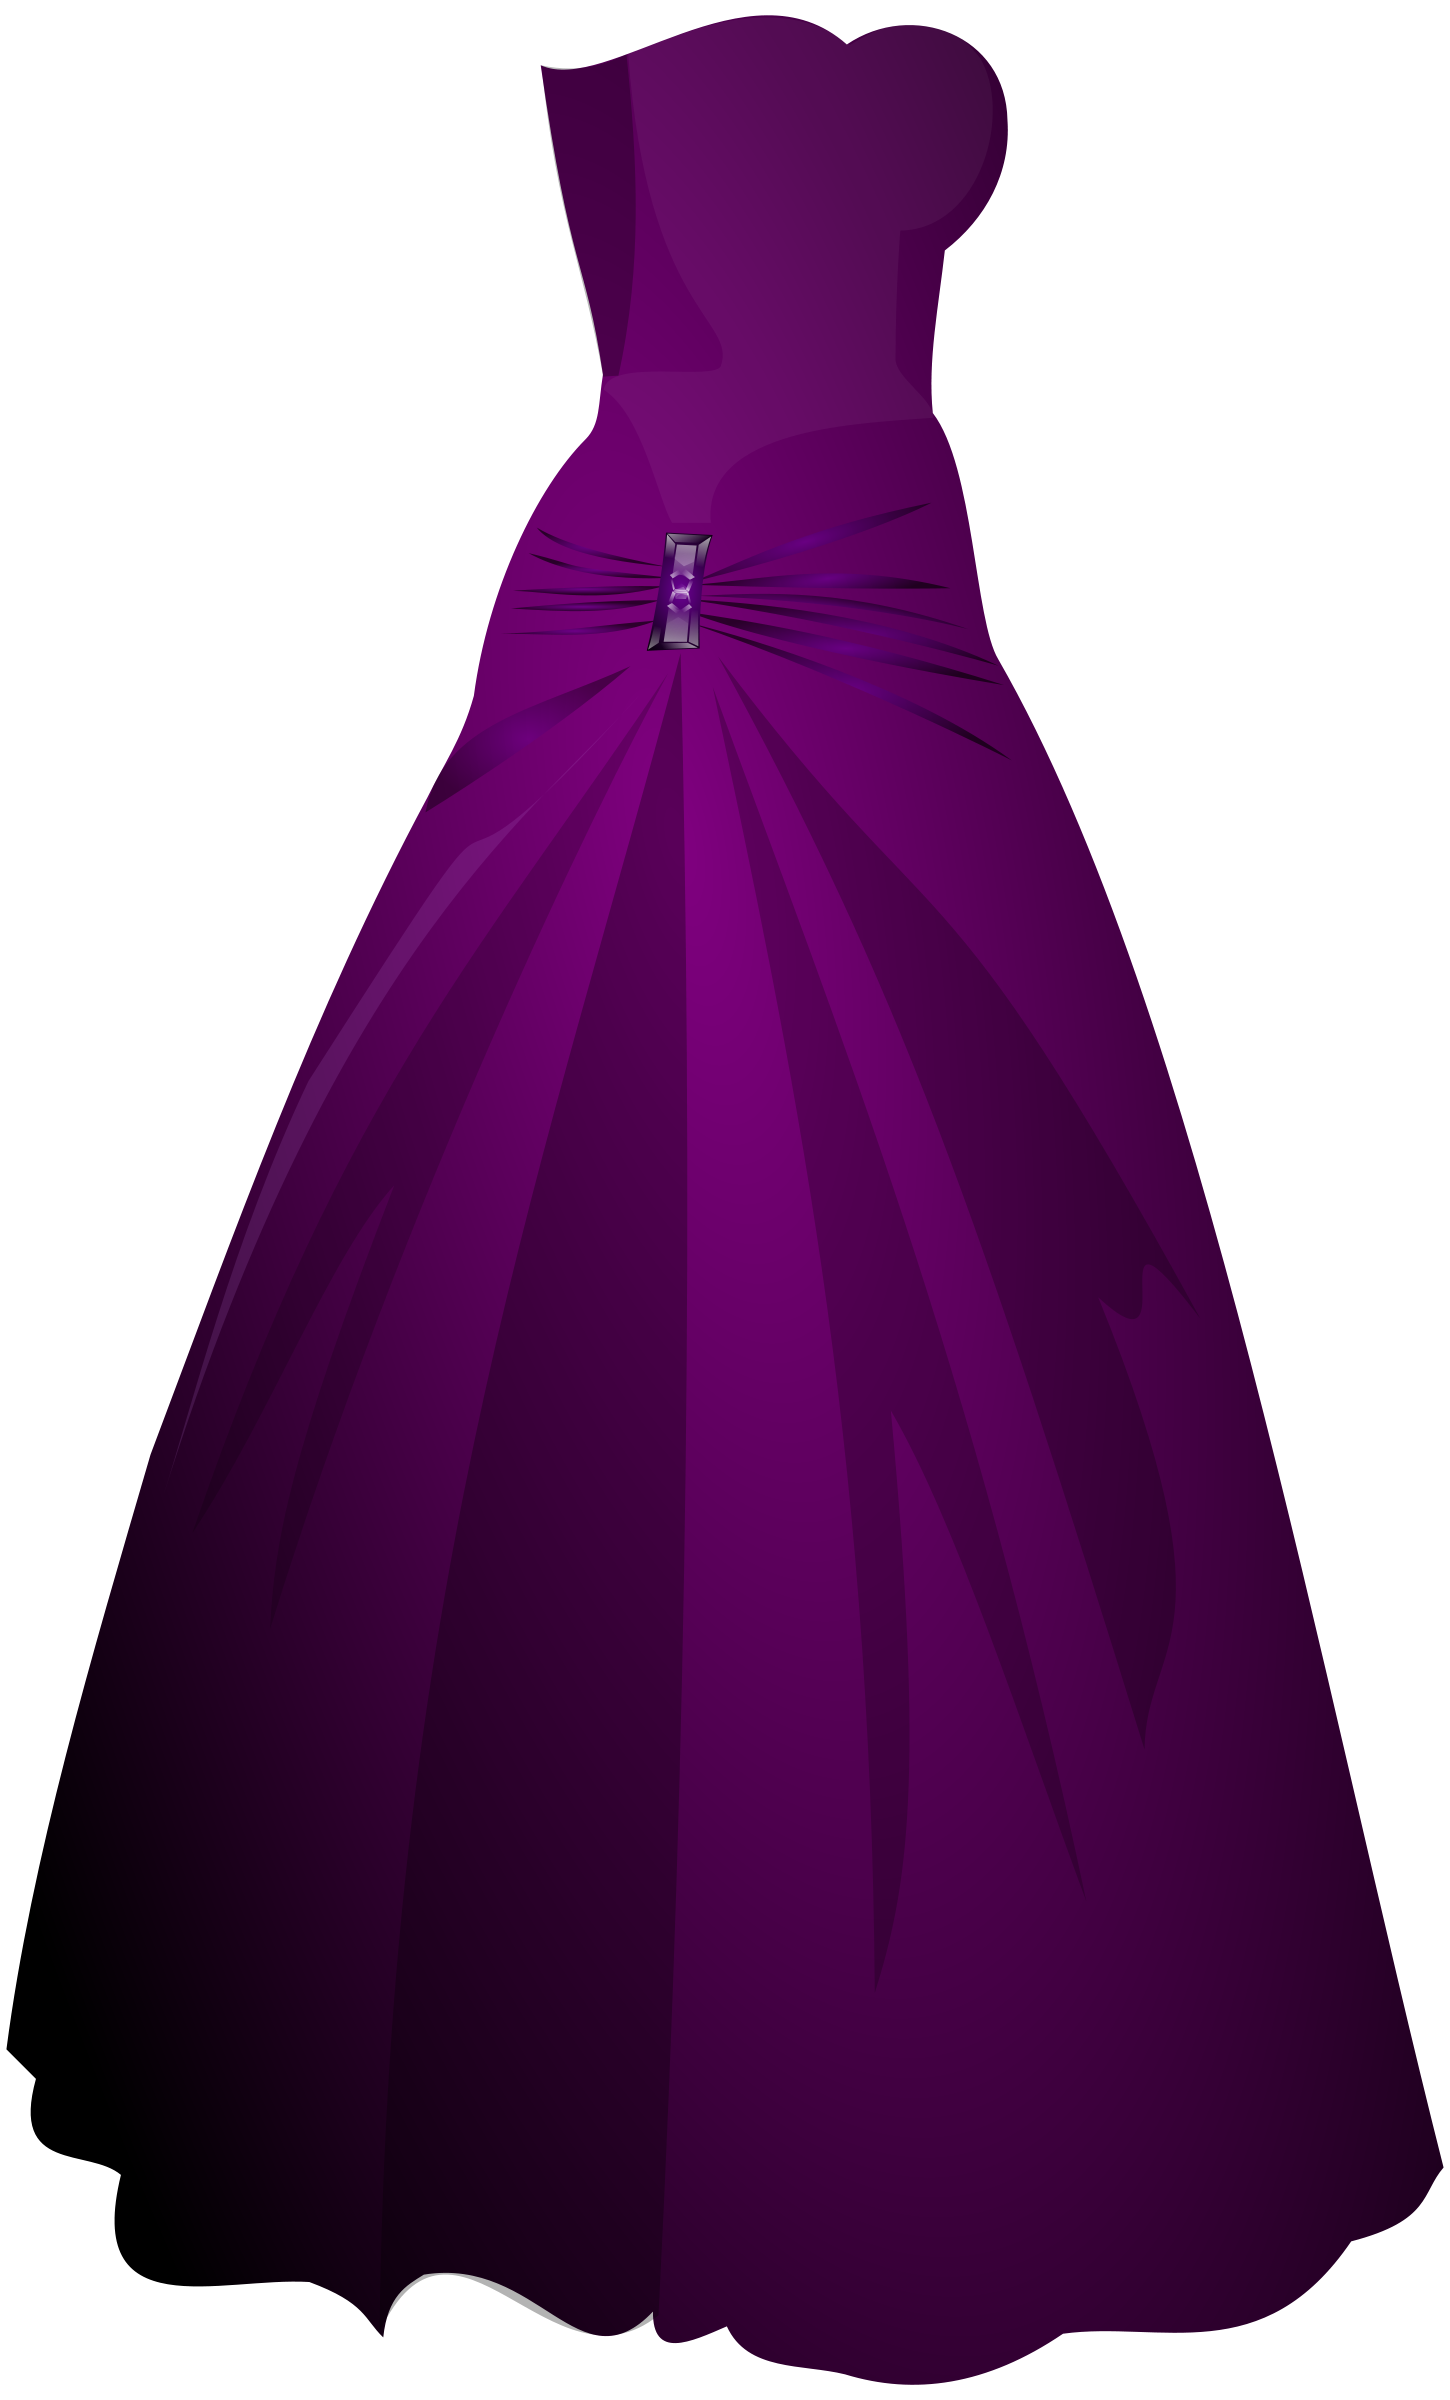 Dress clipart sunday dress. Free prom download clip